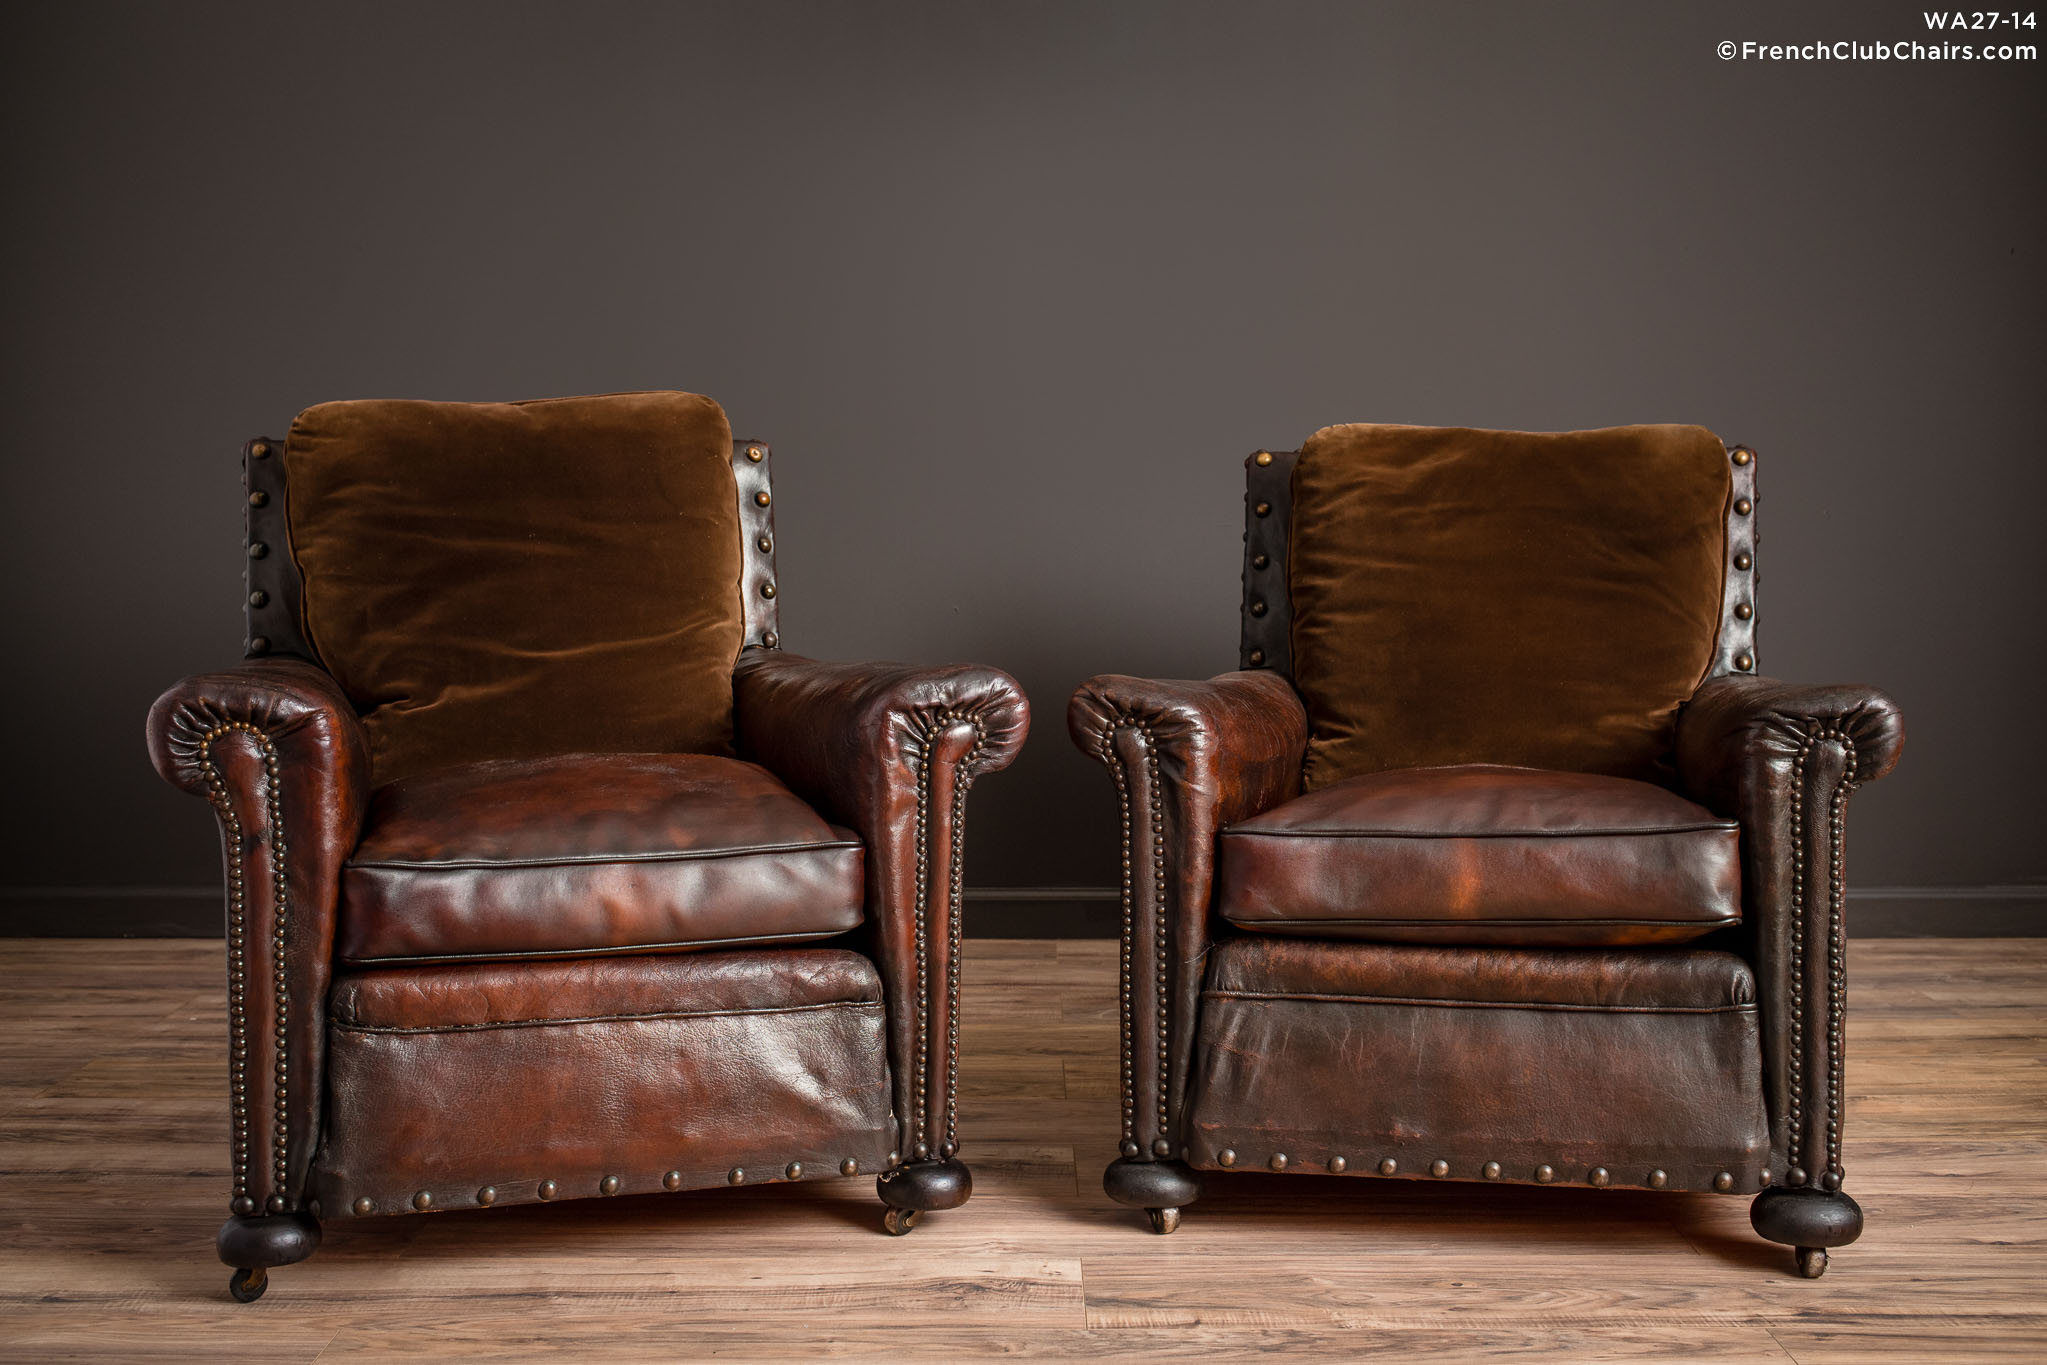 WA_27-14_Ile_de_St_Louis_Nailed_Square_Pair_R_1TQ-v01-williams-antiks-leather-french-club-chair-wa_fcccom